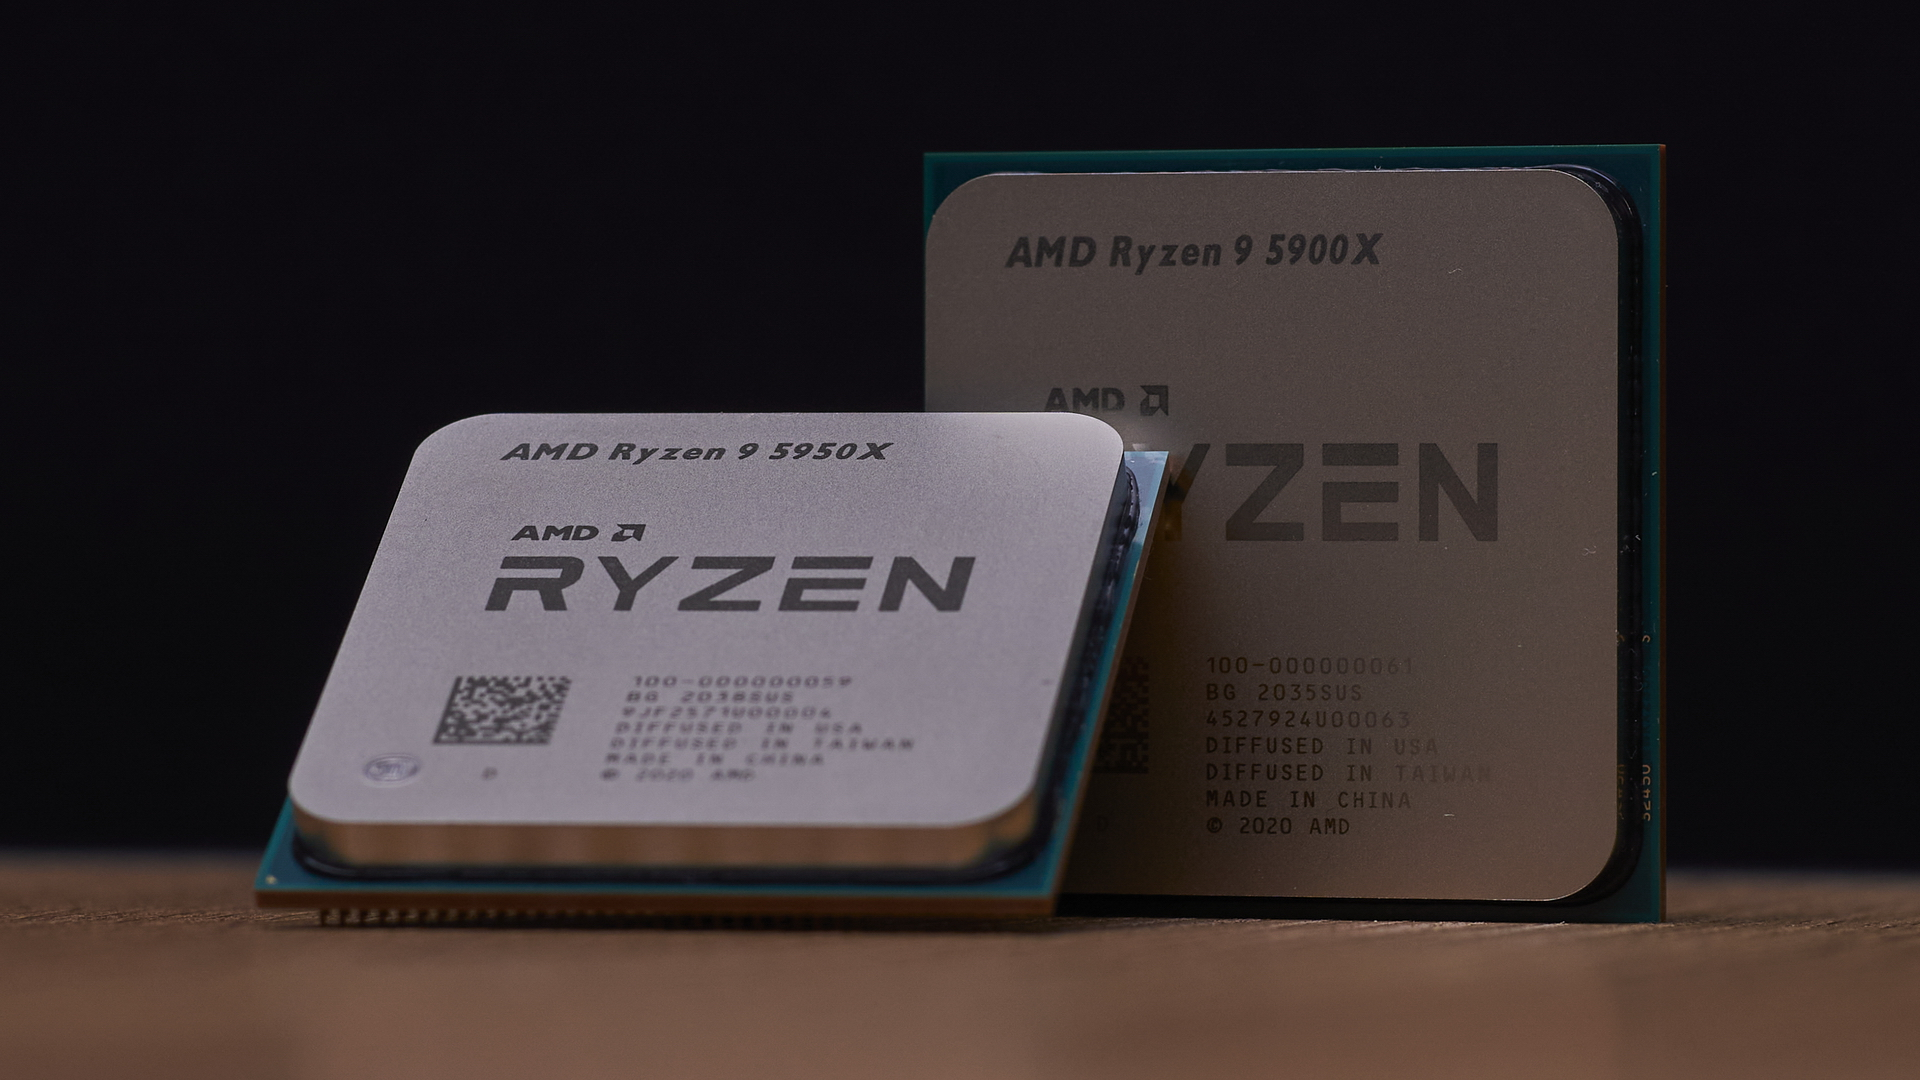 AMD Ryzen 9 5900X & Ryzen 9 5950X review | WASD